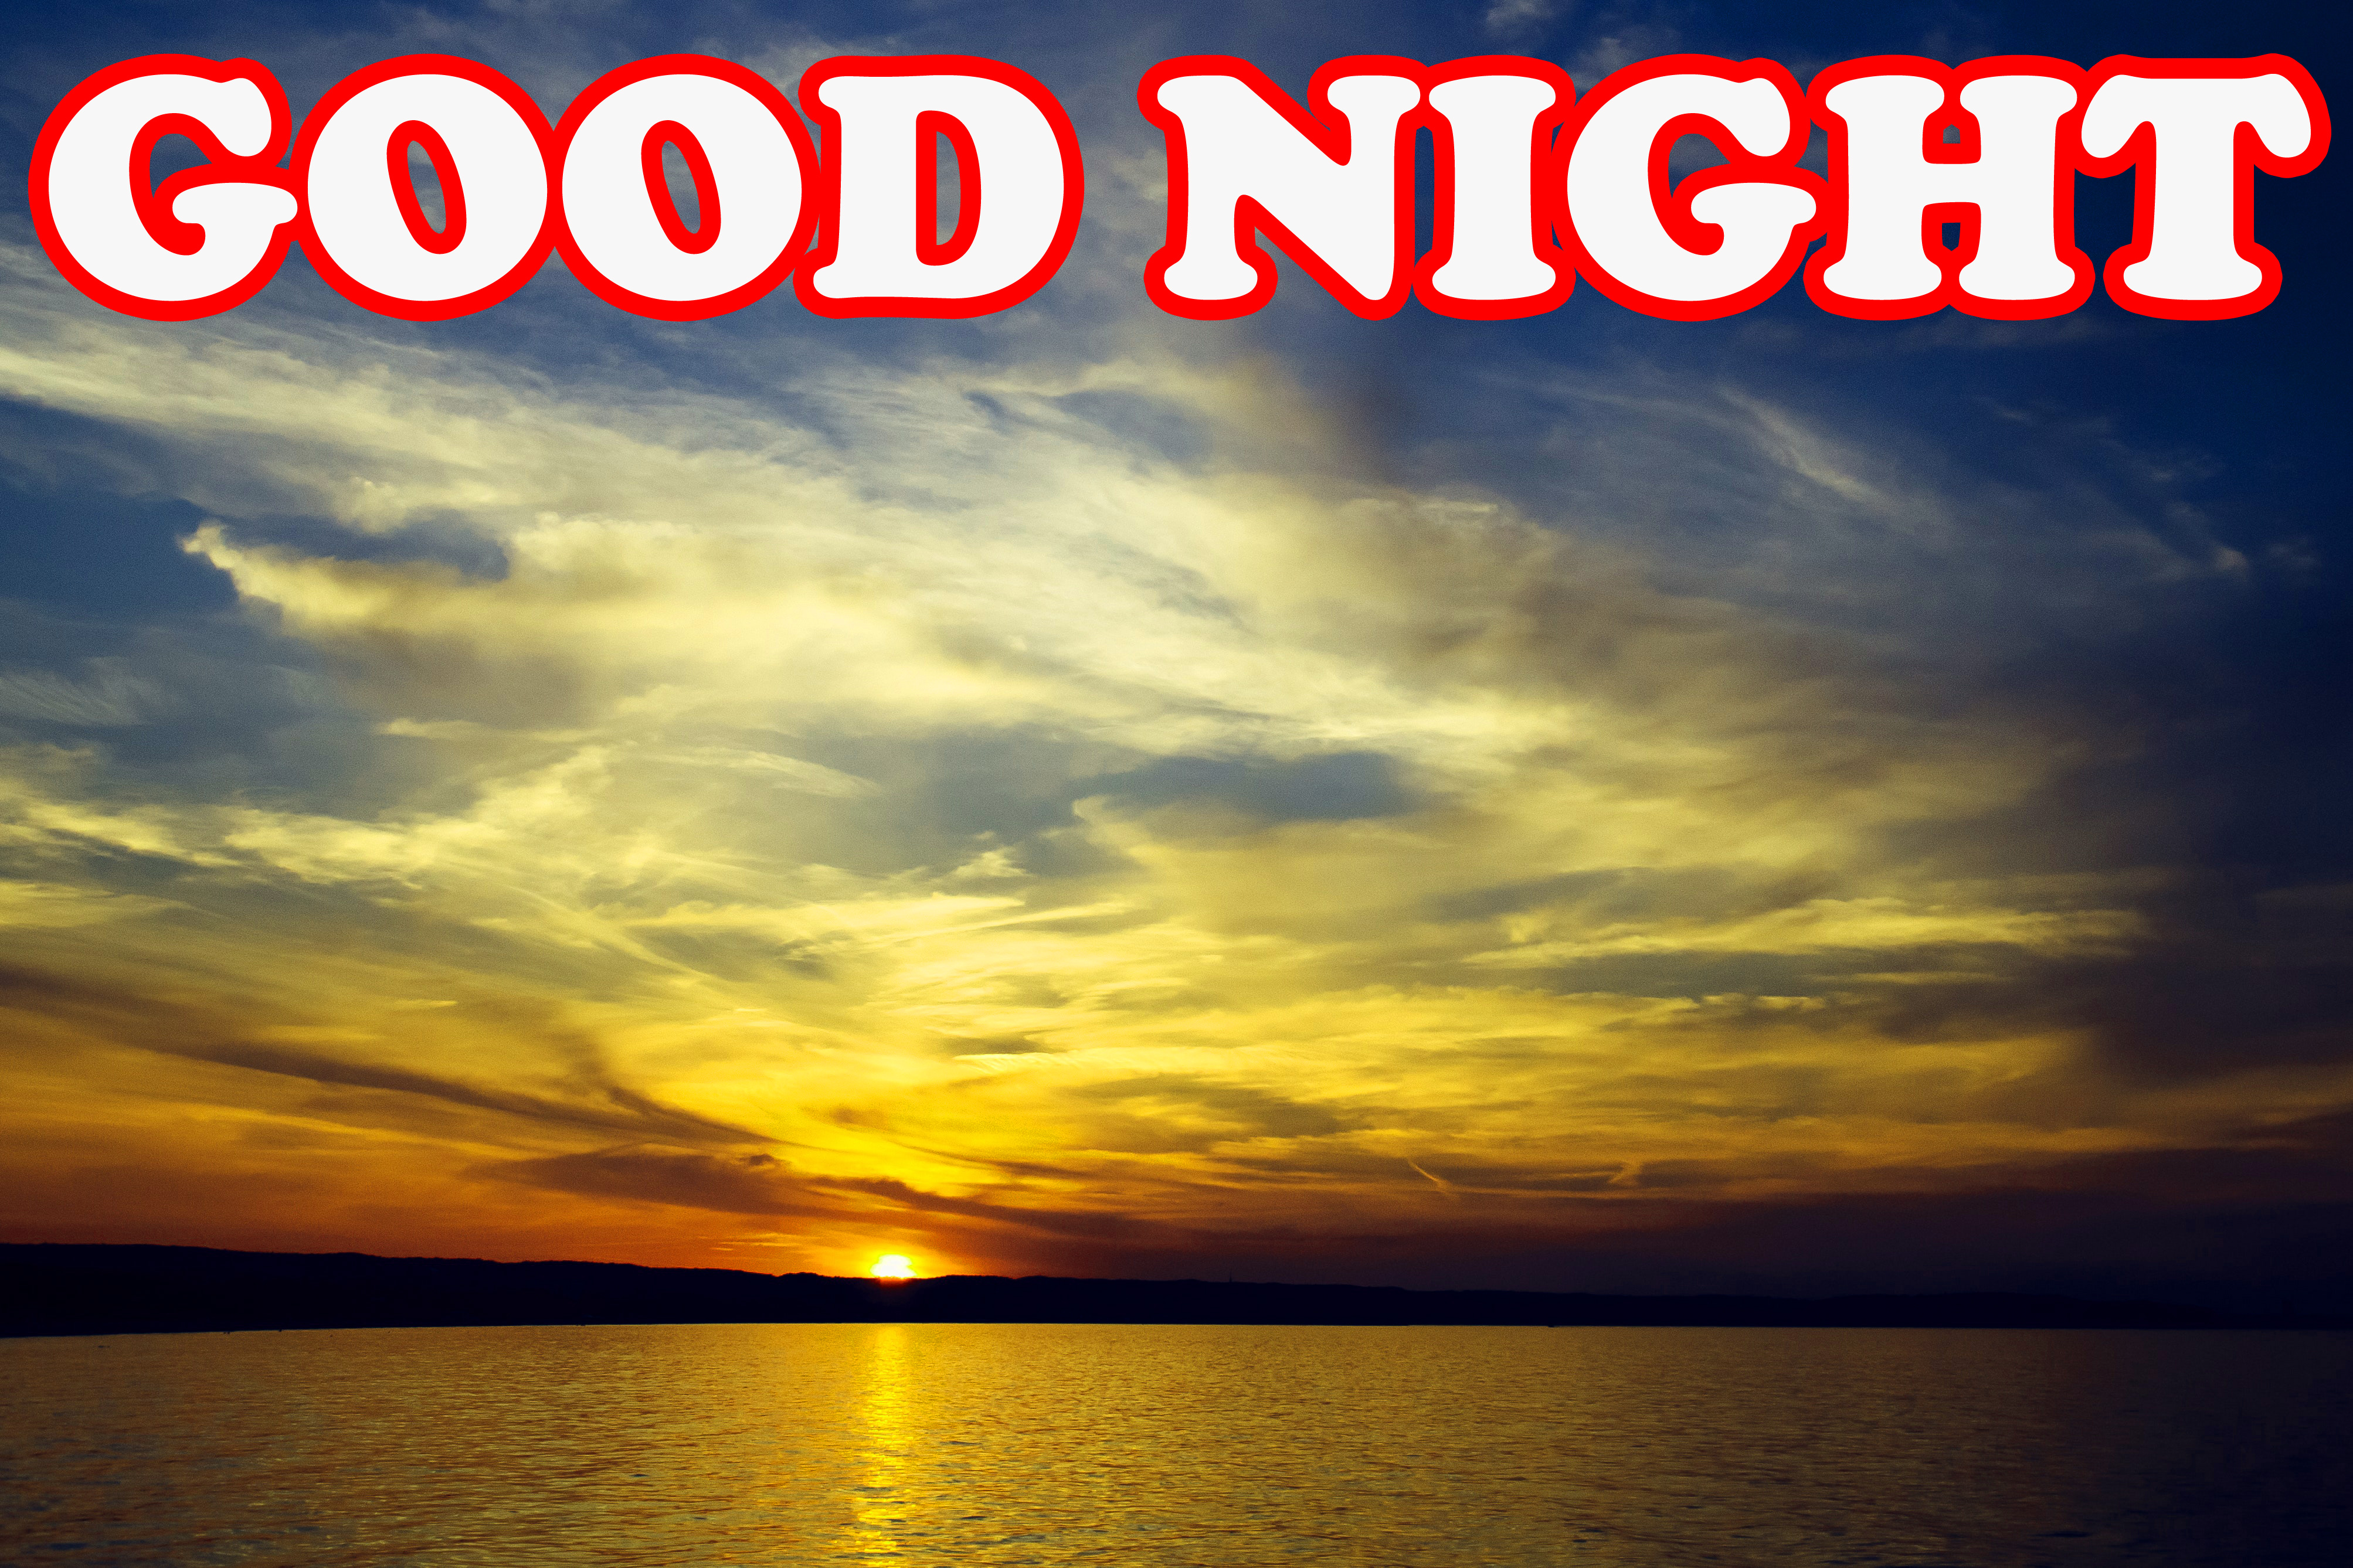 Good Night Images  Wallpaper Pictures Download for Whatsapp